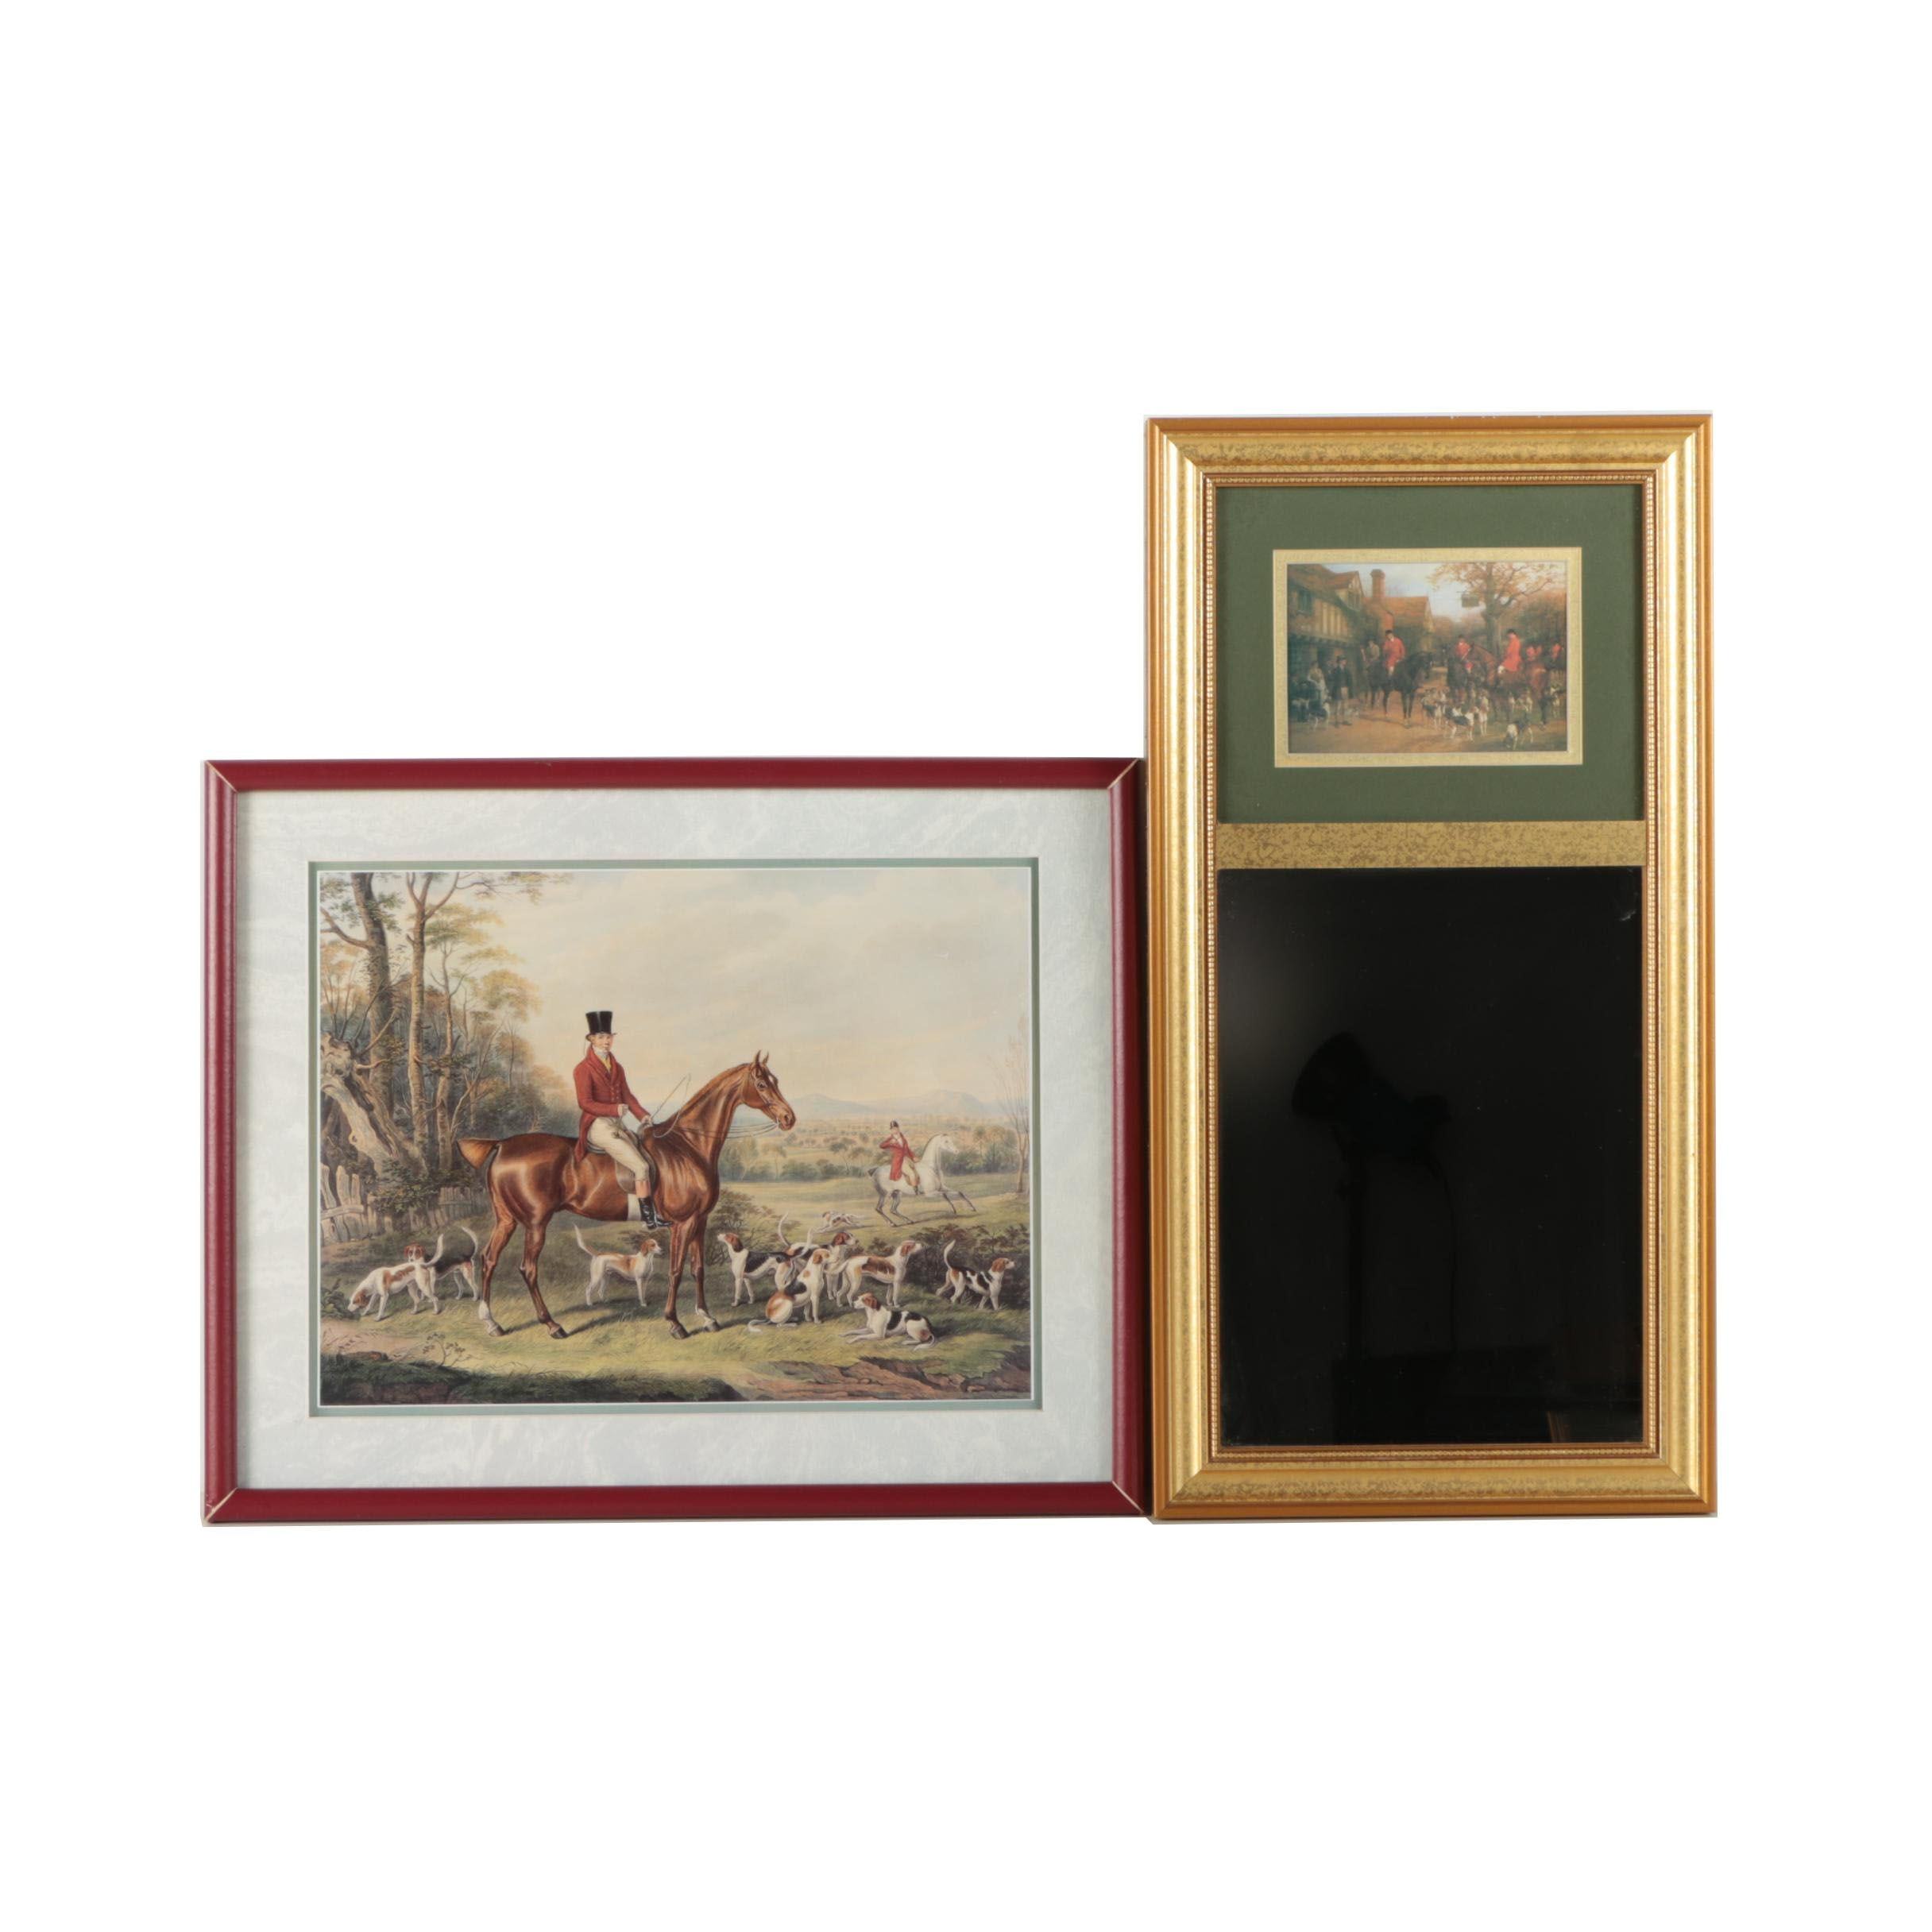 Trumeau Mirror and Offset Lithograph with Hunt Scenes